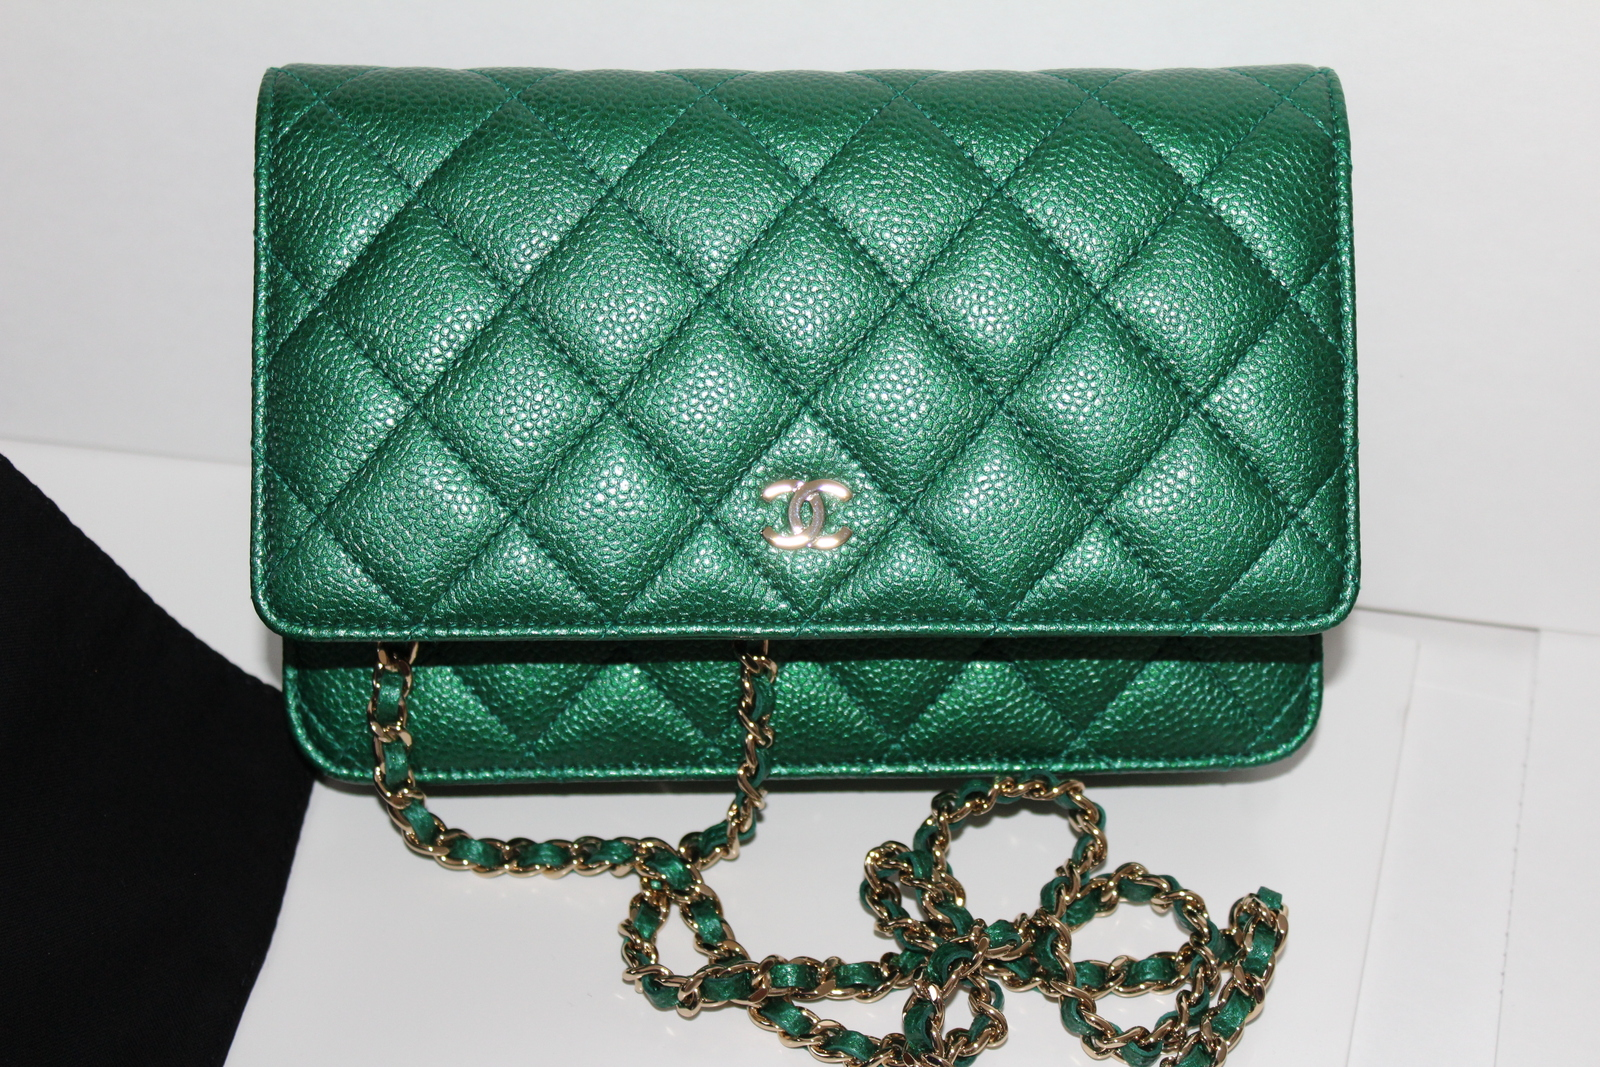 6d48ad3201b90a Img 2493. Img 2493. Previous. New Chanel Wallet on Chain Green Iridescent  Caviar Cross Body Bag 2018